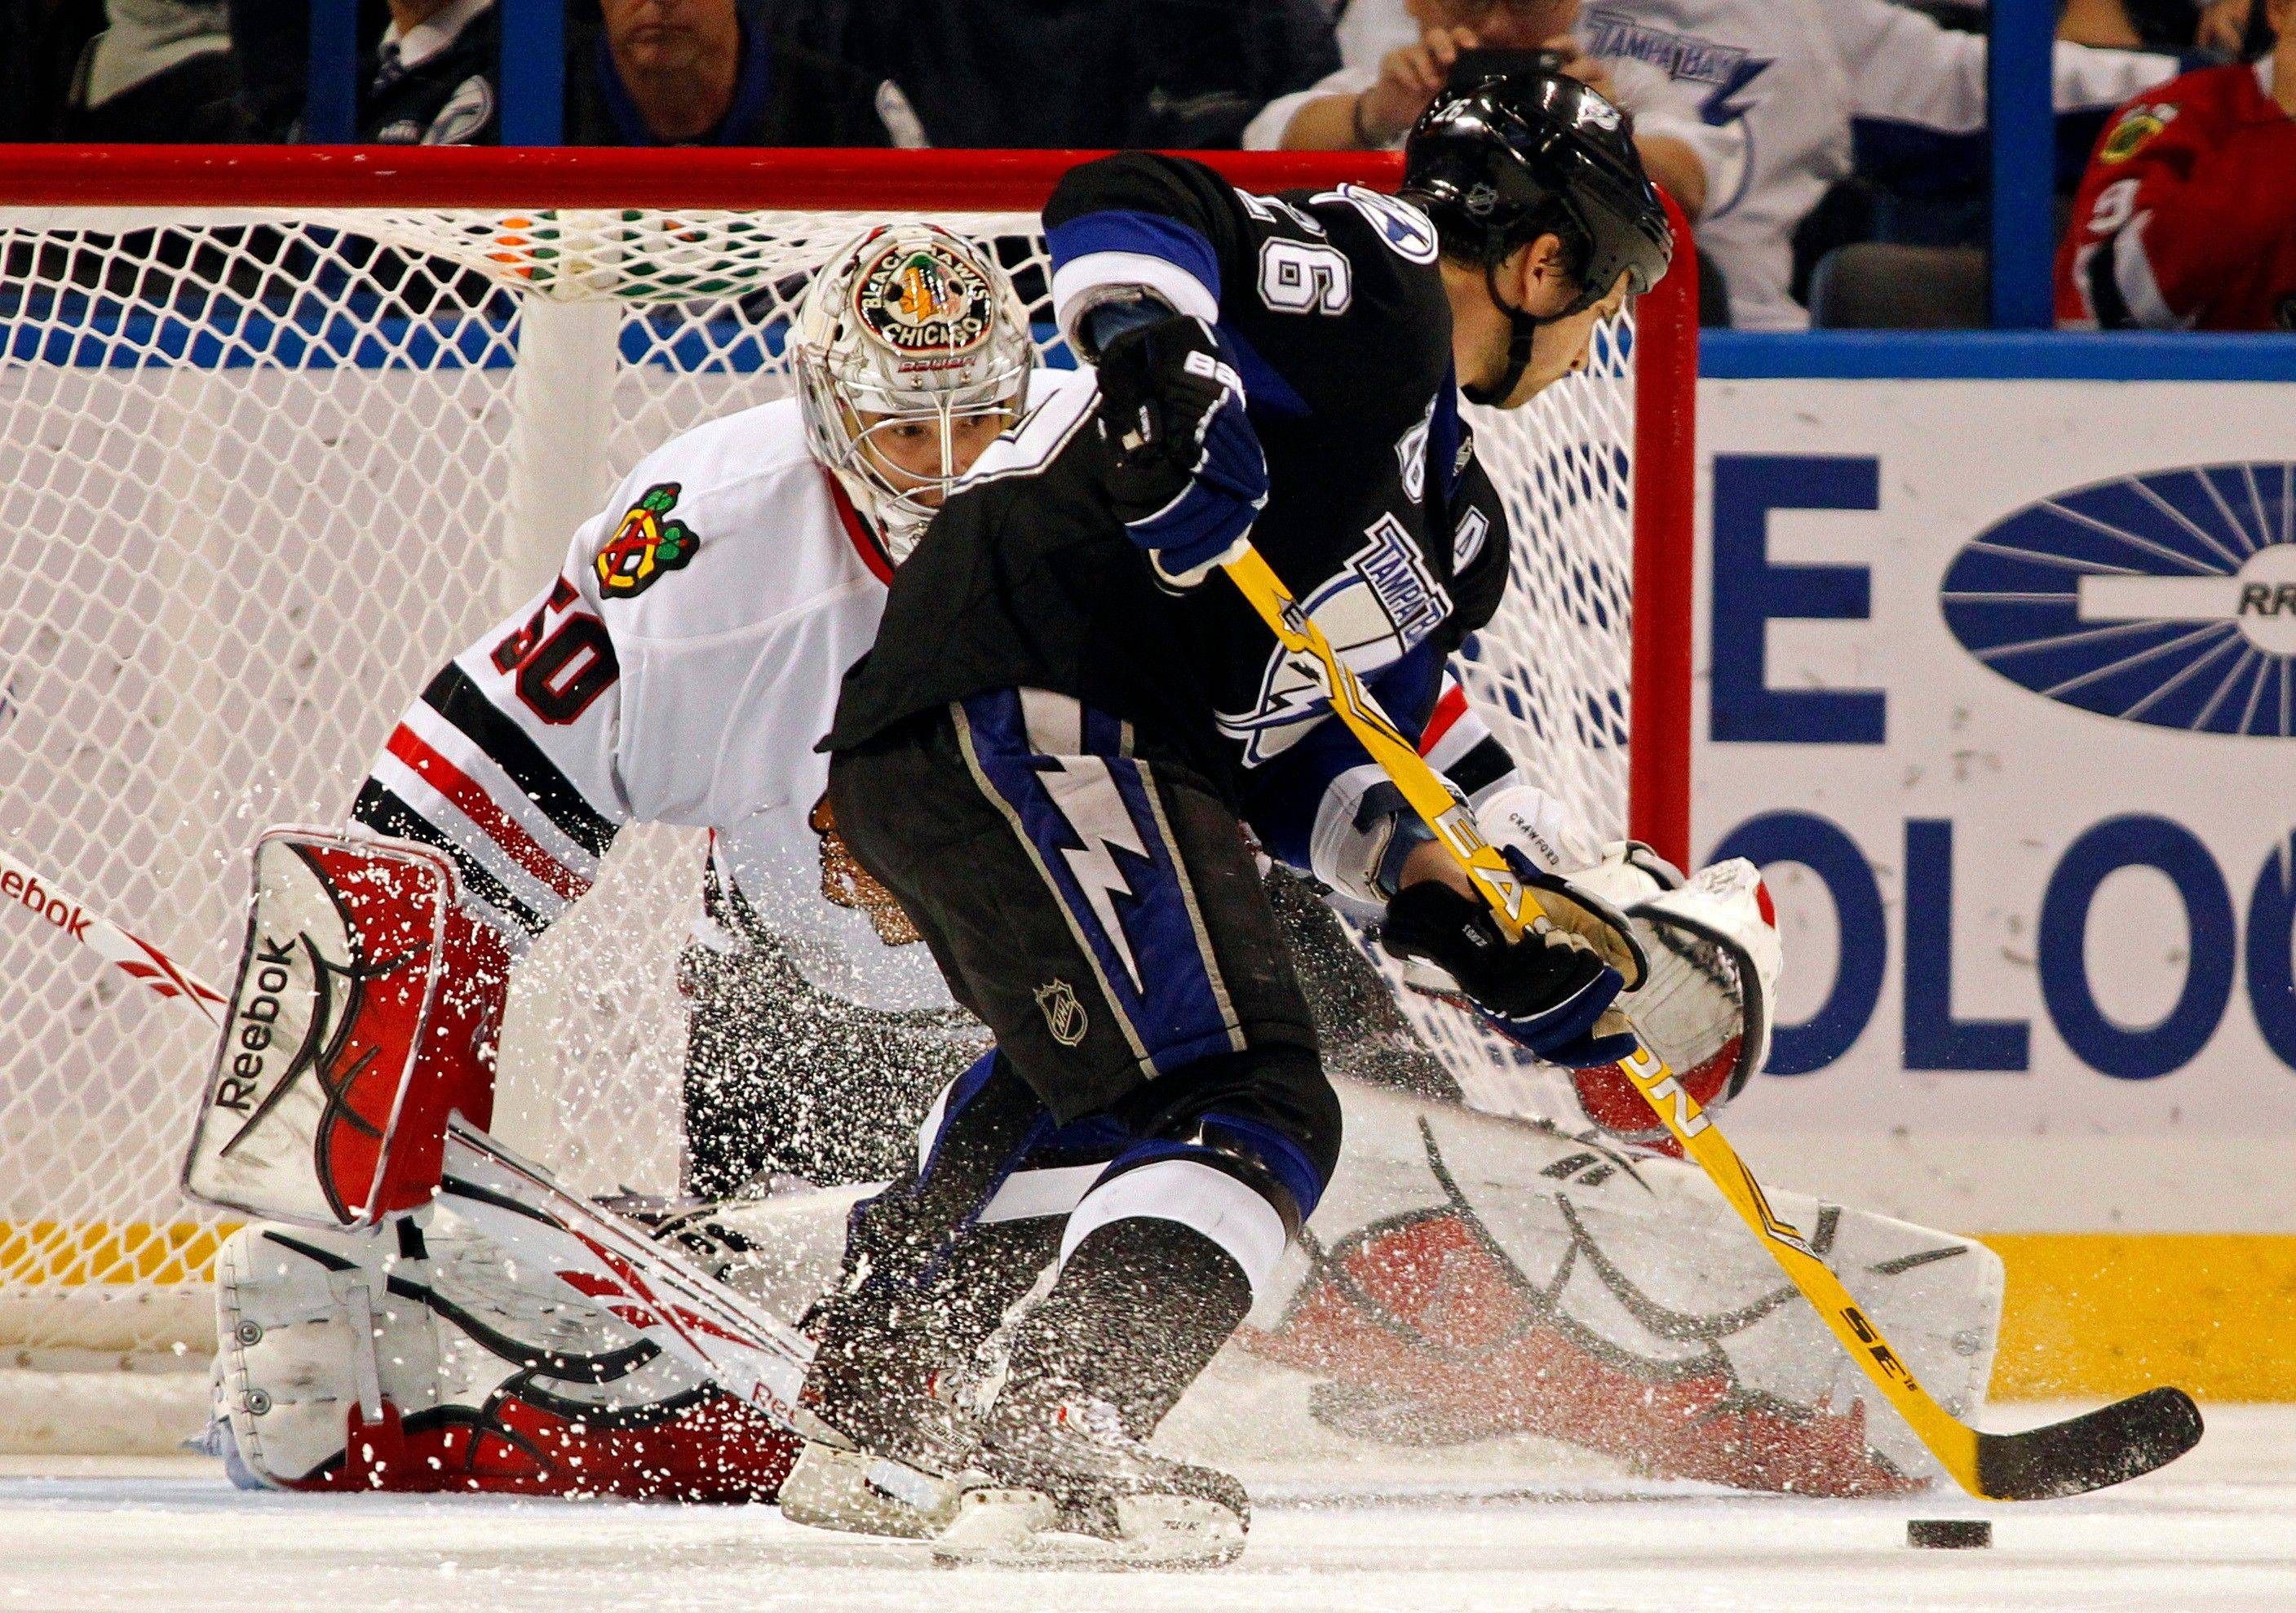 Tampa Bay Lightning's Martin St. Louis scores the game winning goal in a shootout past Chicago Blackhawks goalie Corey Crawford during Wednesday game in Tampa, Fla.